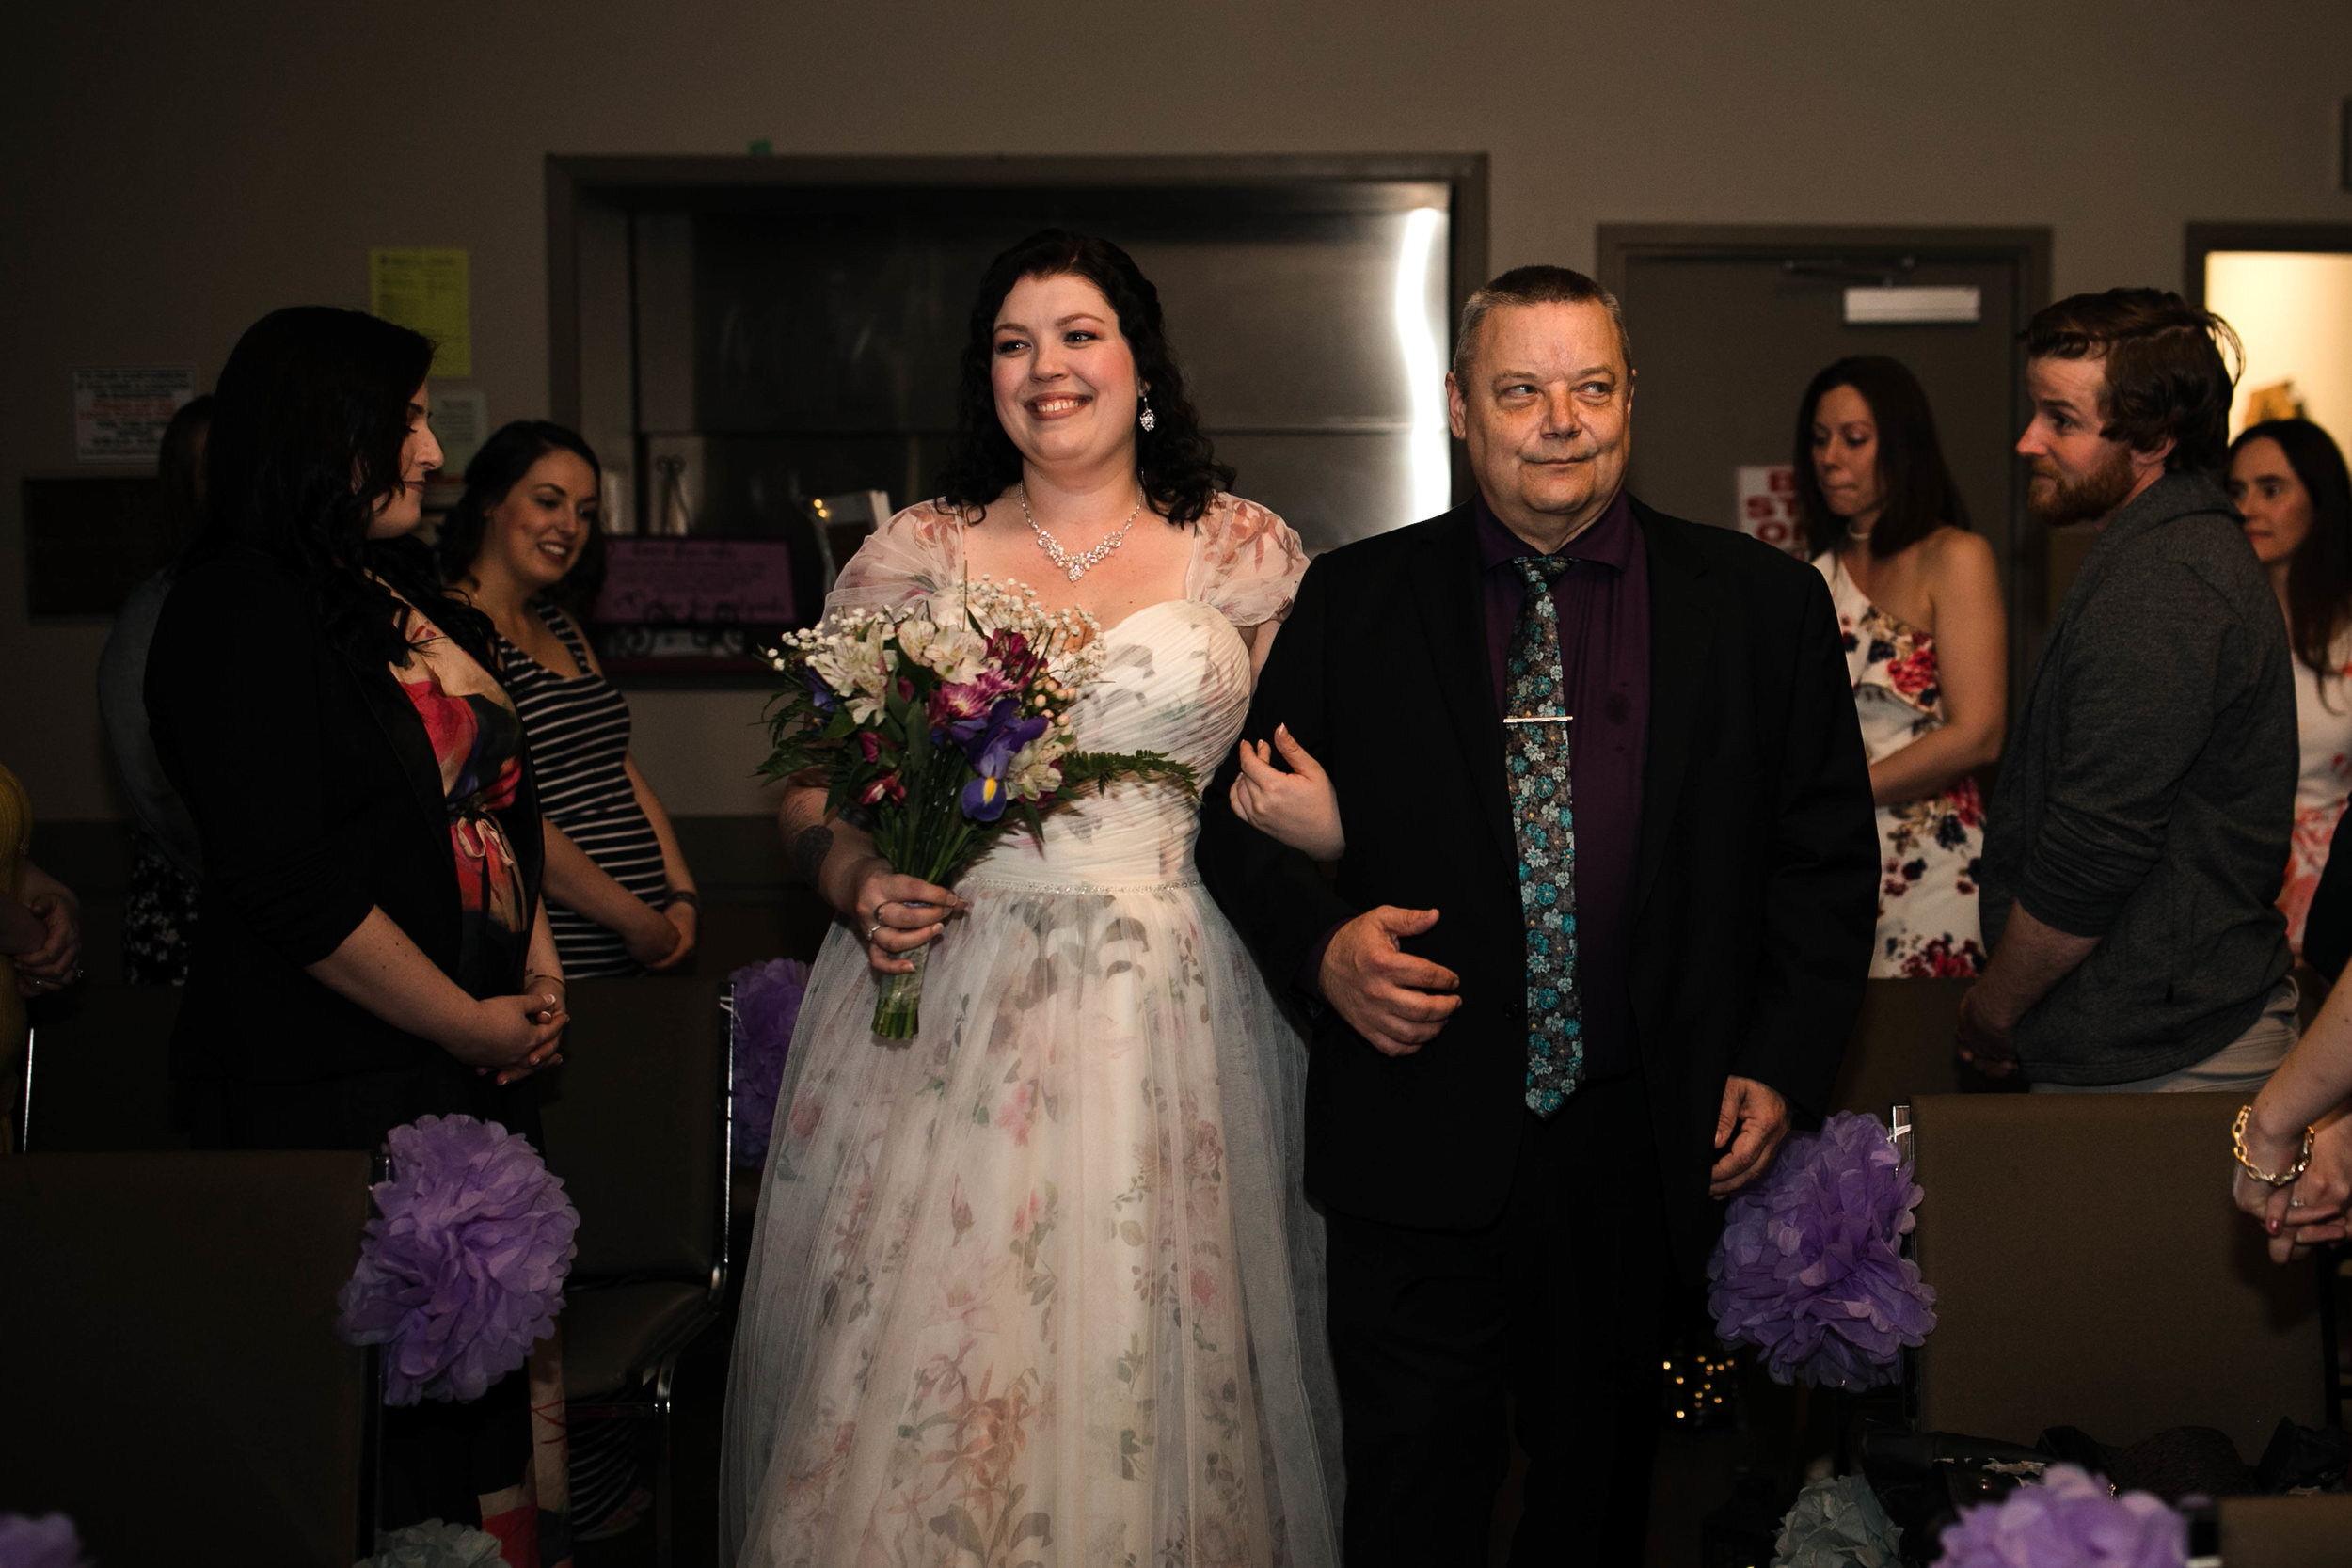 CrystalJessuppeterboroughwedding (21 of 79).jpg